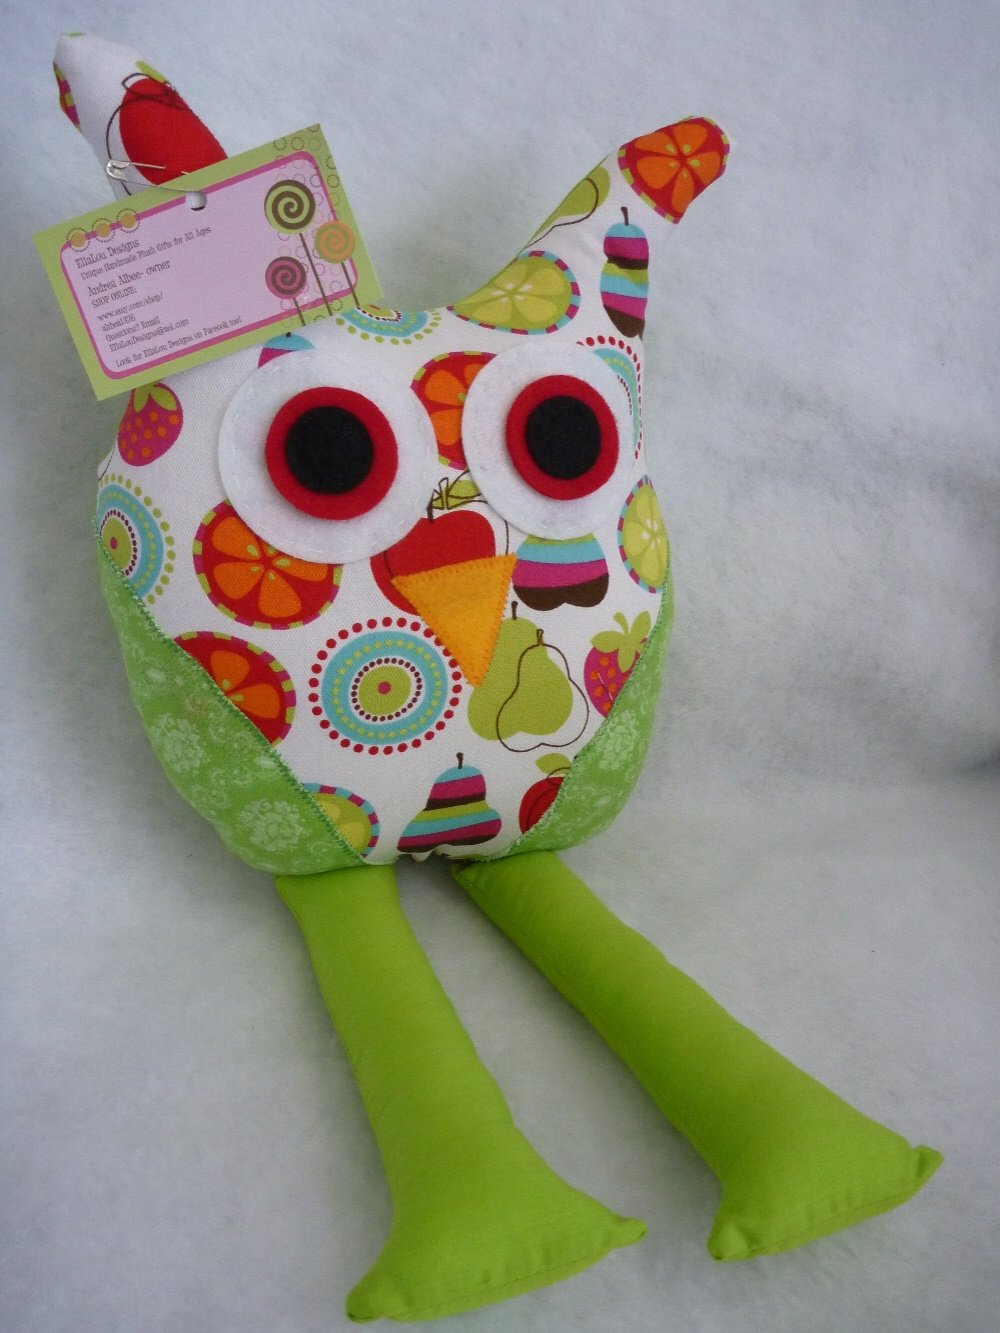 Owl Pillow for Nursery/Room Decor in Green, Red Apples